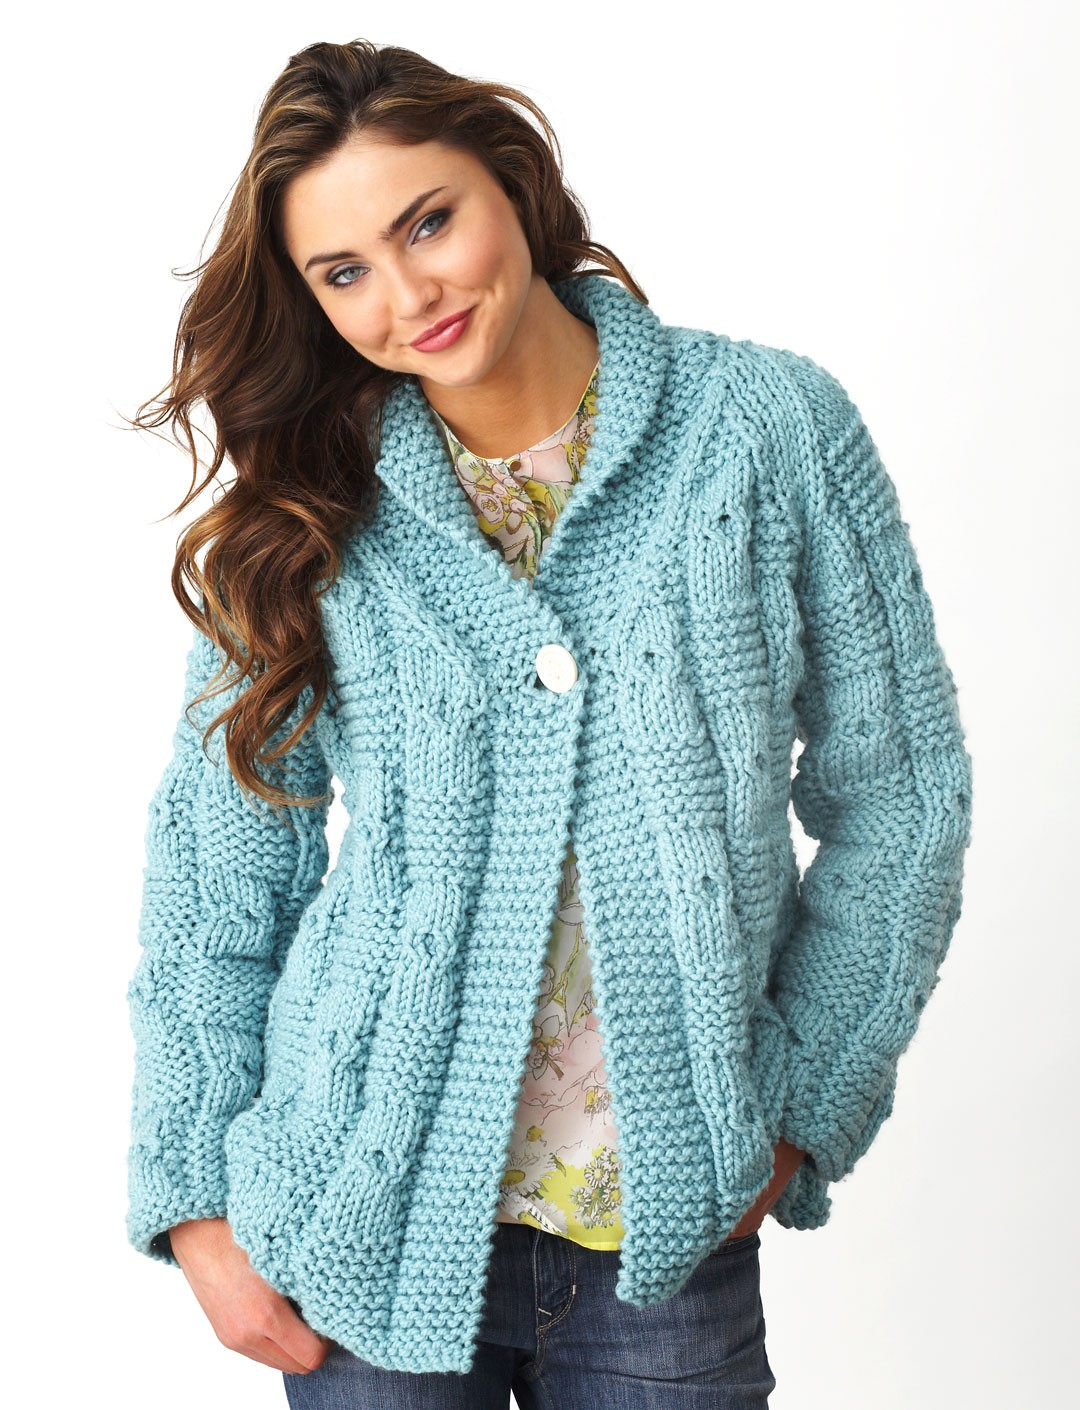 Knitting Pattern Chunky Wool Cardigan : Bernat Textured Checks Cardigan, Knit Pattern Yarnspirations